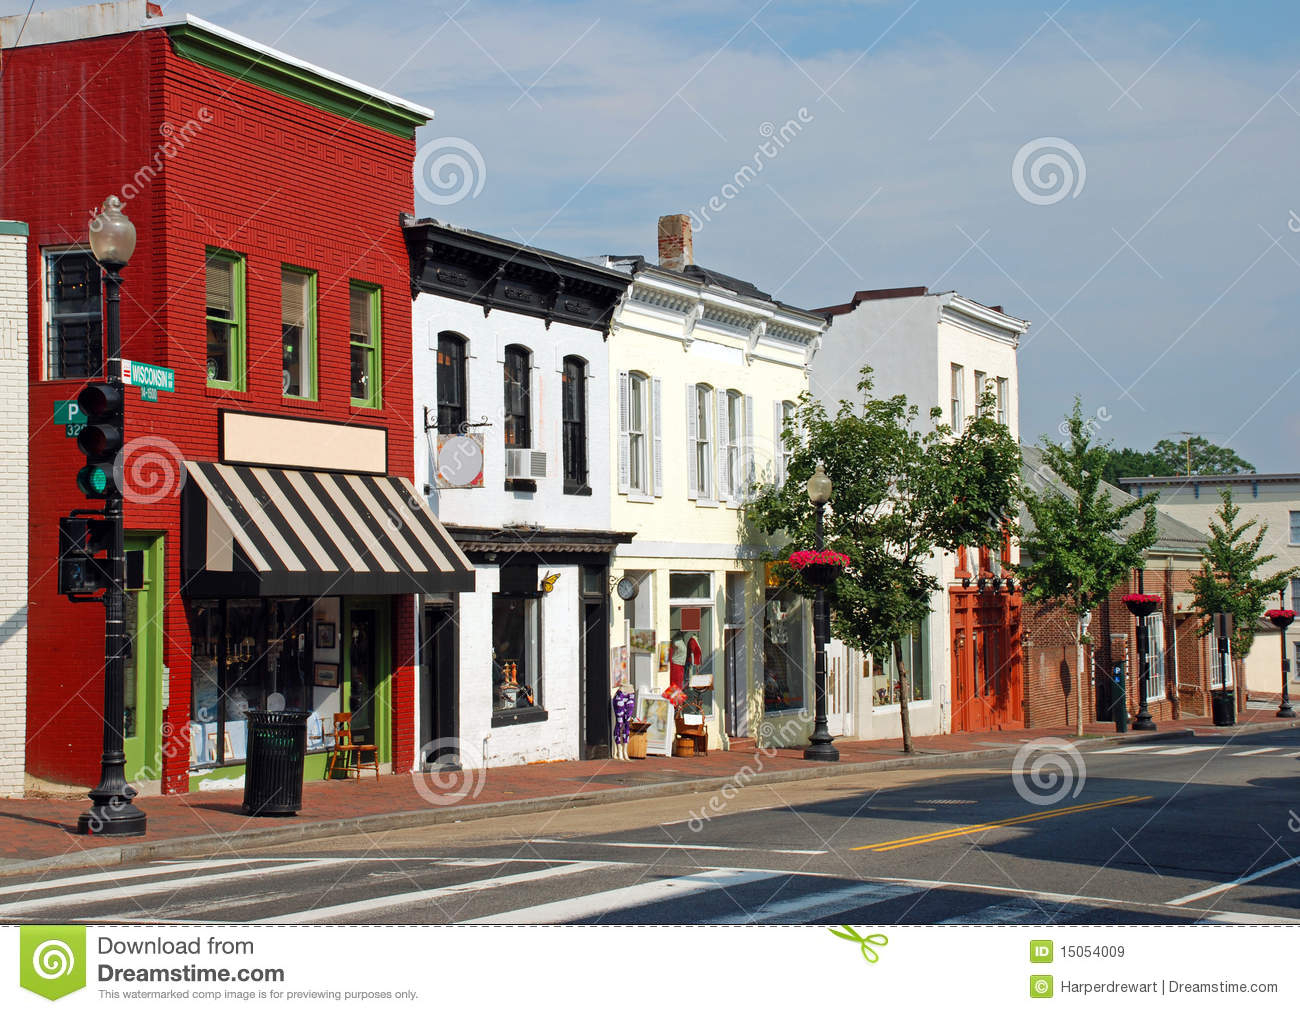 Main street clipart picture library library Main Street Clipart - Clipart Kid picture library library